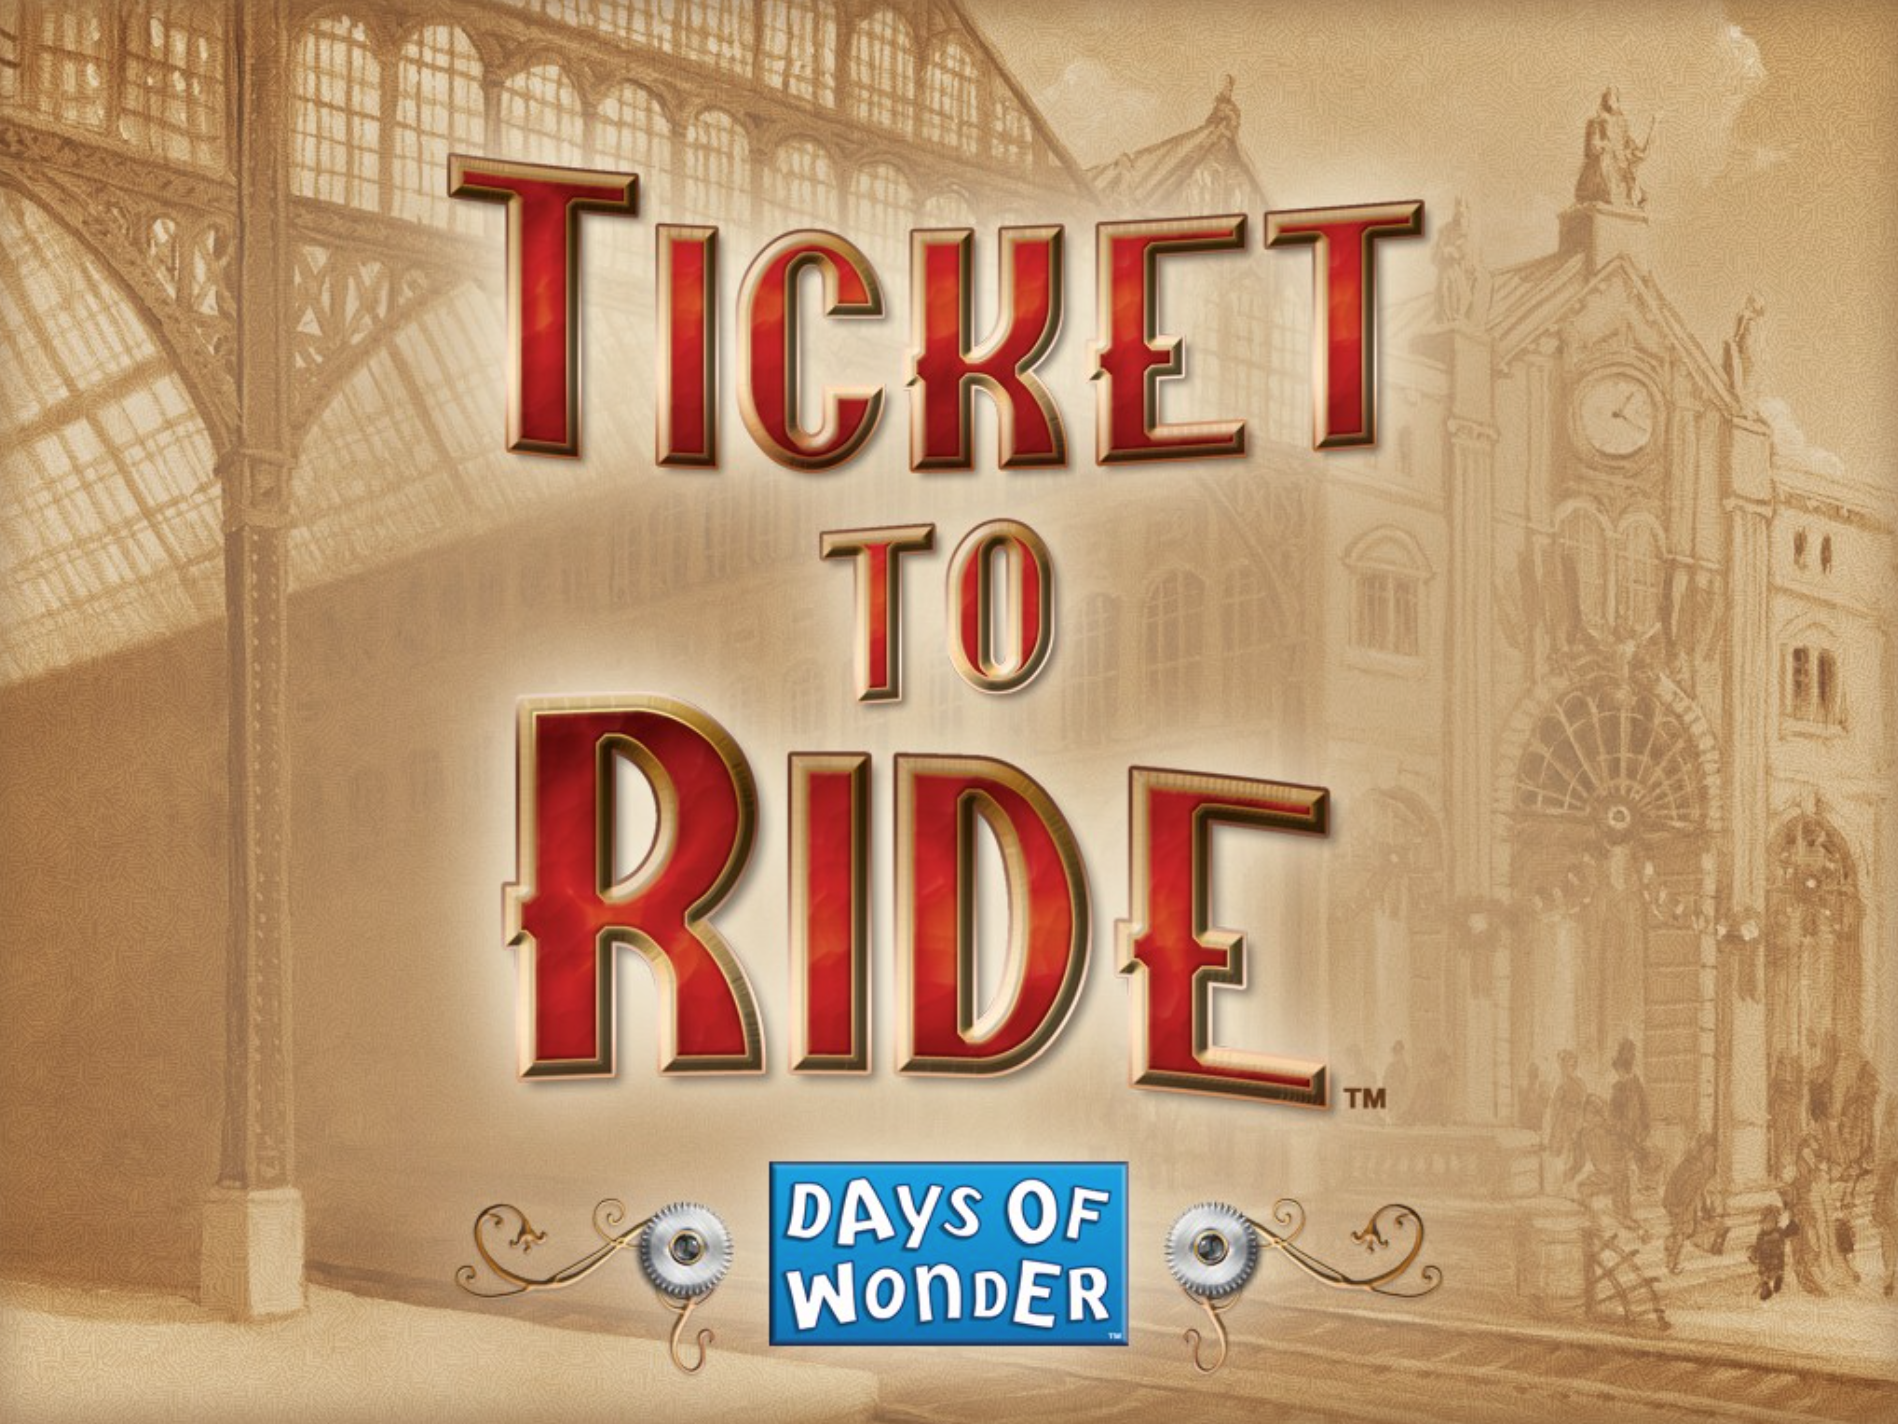 Ticket to Ride goes 2.0, adds cross-platform gaming and more